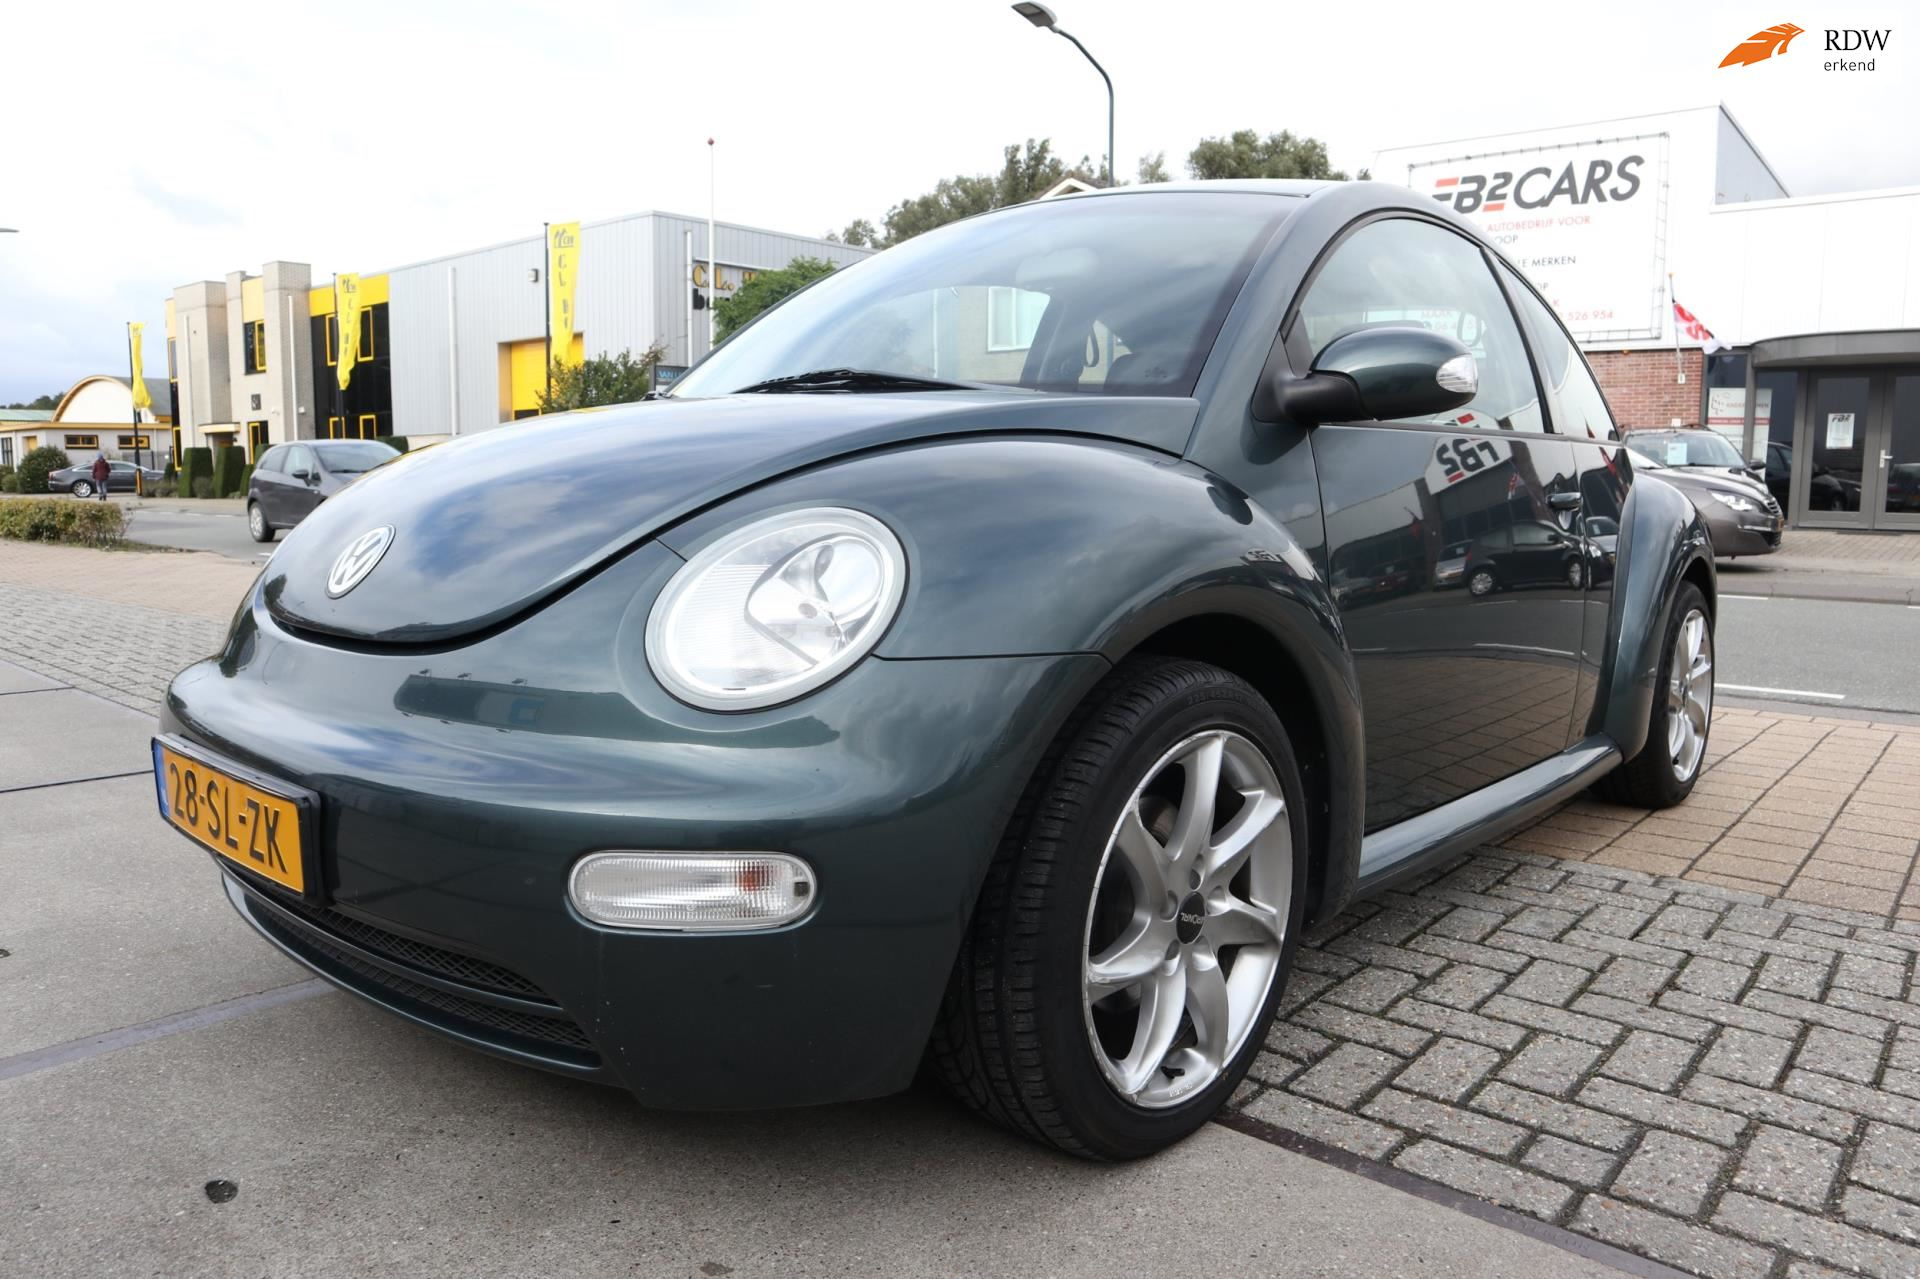 Volkswagen New Beetle occasion - FB2 Cars